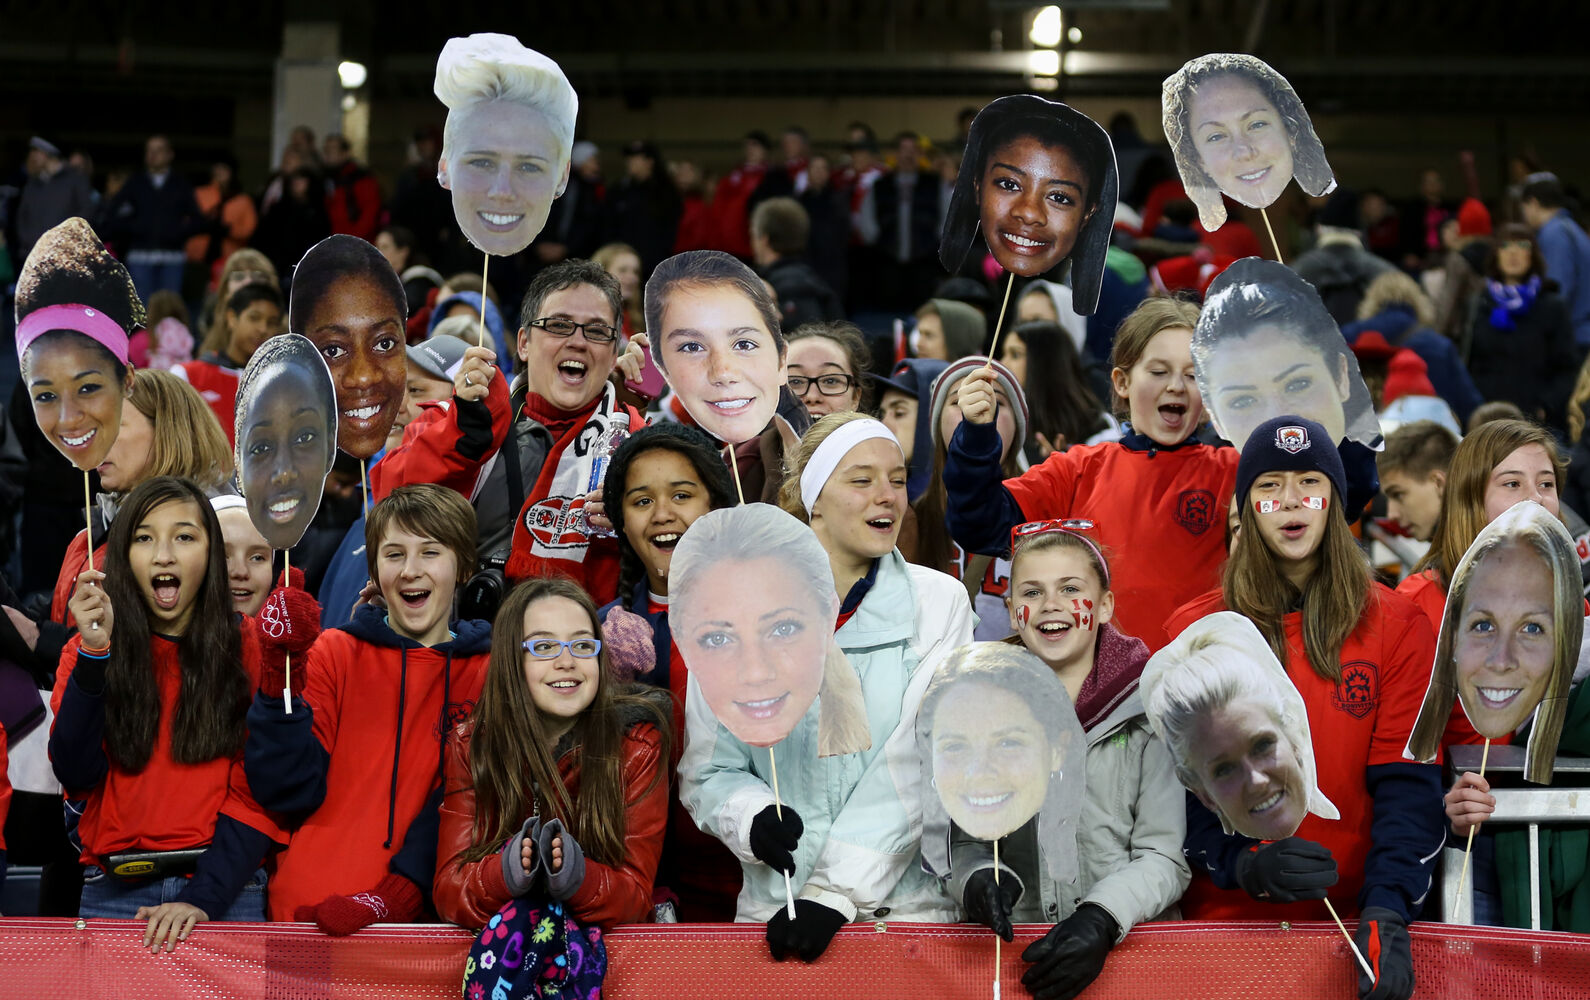 After the match fans show off their home made Team Canada signs with the faces of the players. (Melissa Tait / Winnipeg Free Press)